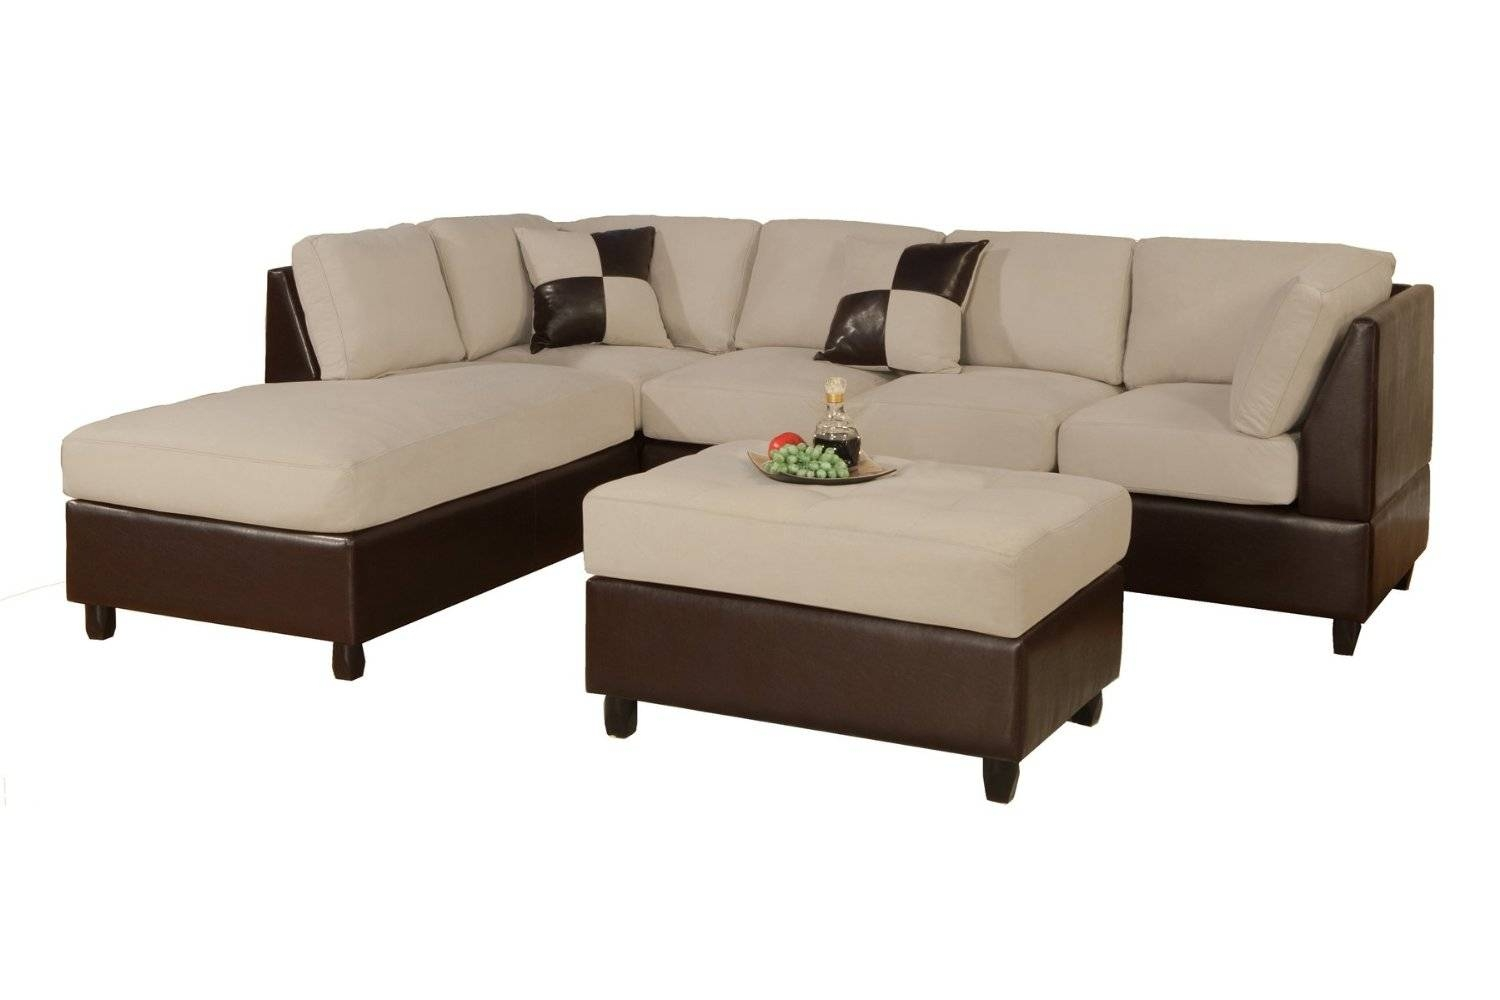 Living Room: Affordable Sectional Sofas | Discount Sectional Sofa with regard to 10 Piece Sectional Sofa (Image 17 of 30)